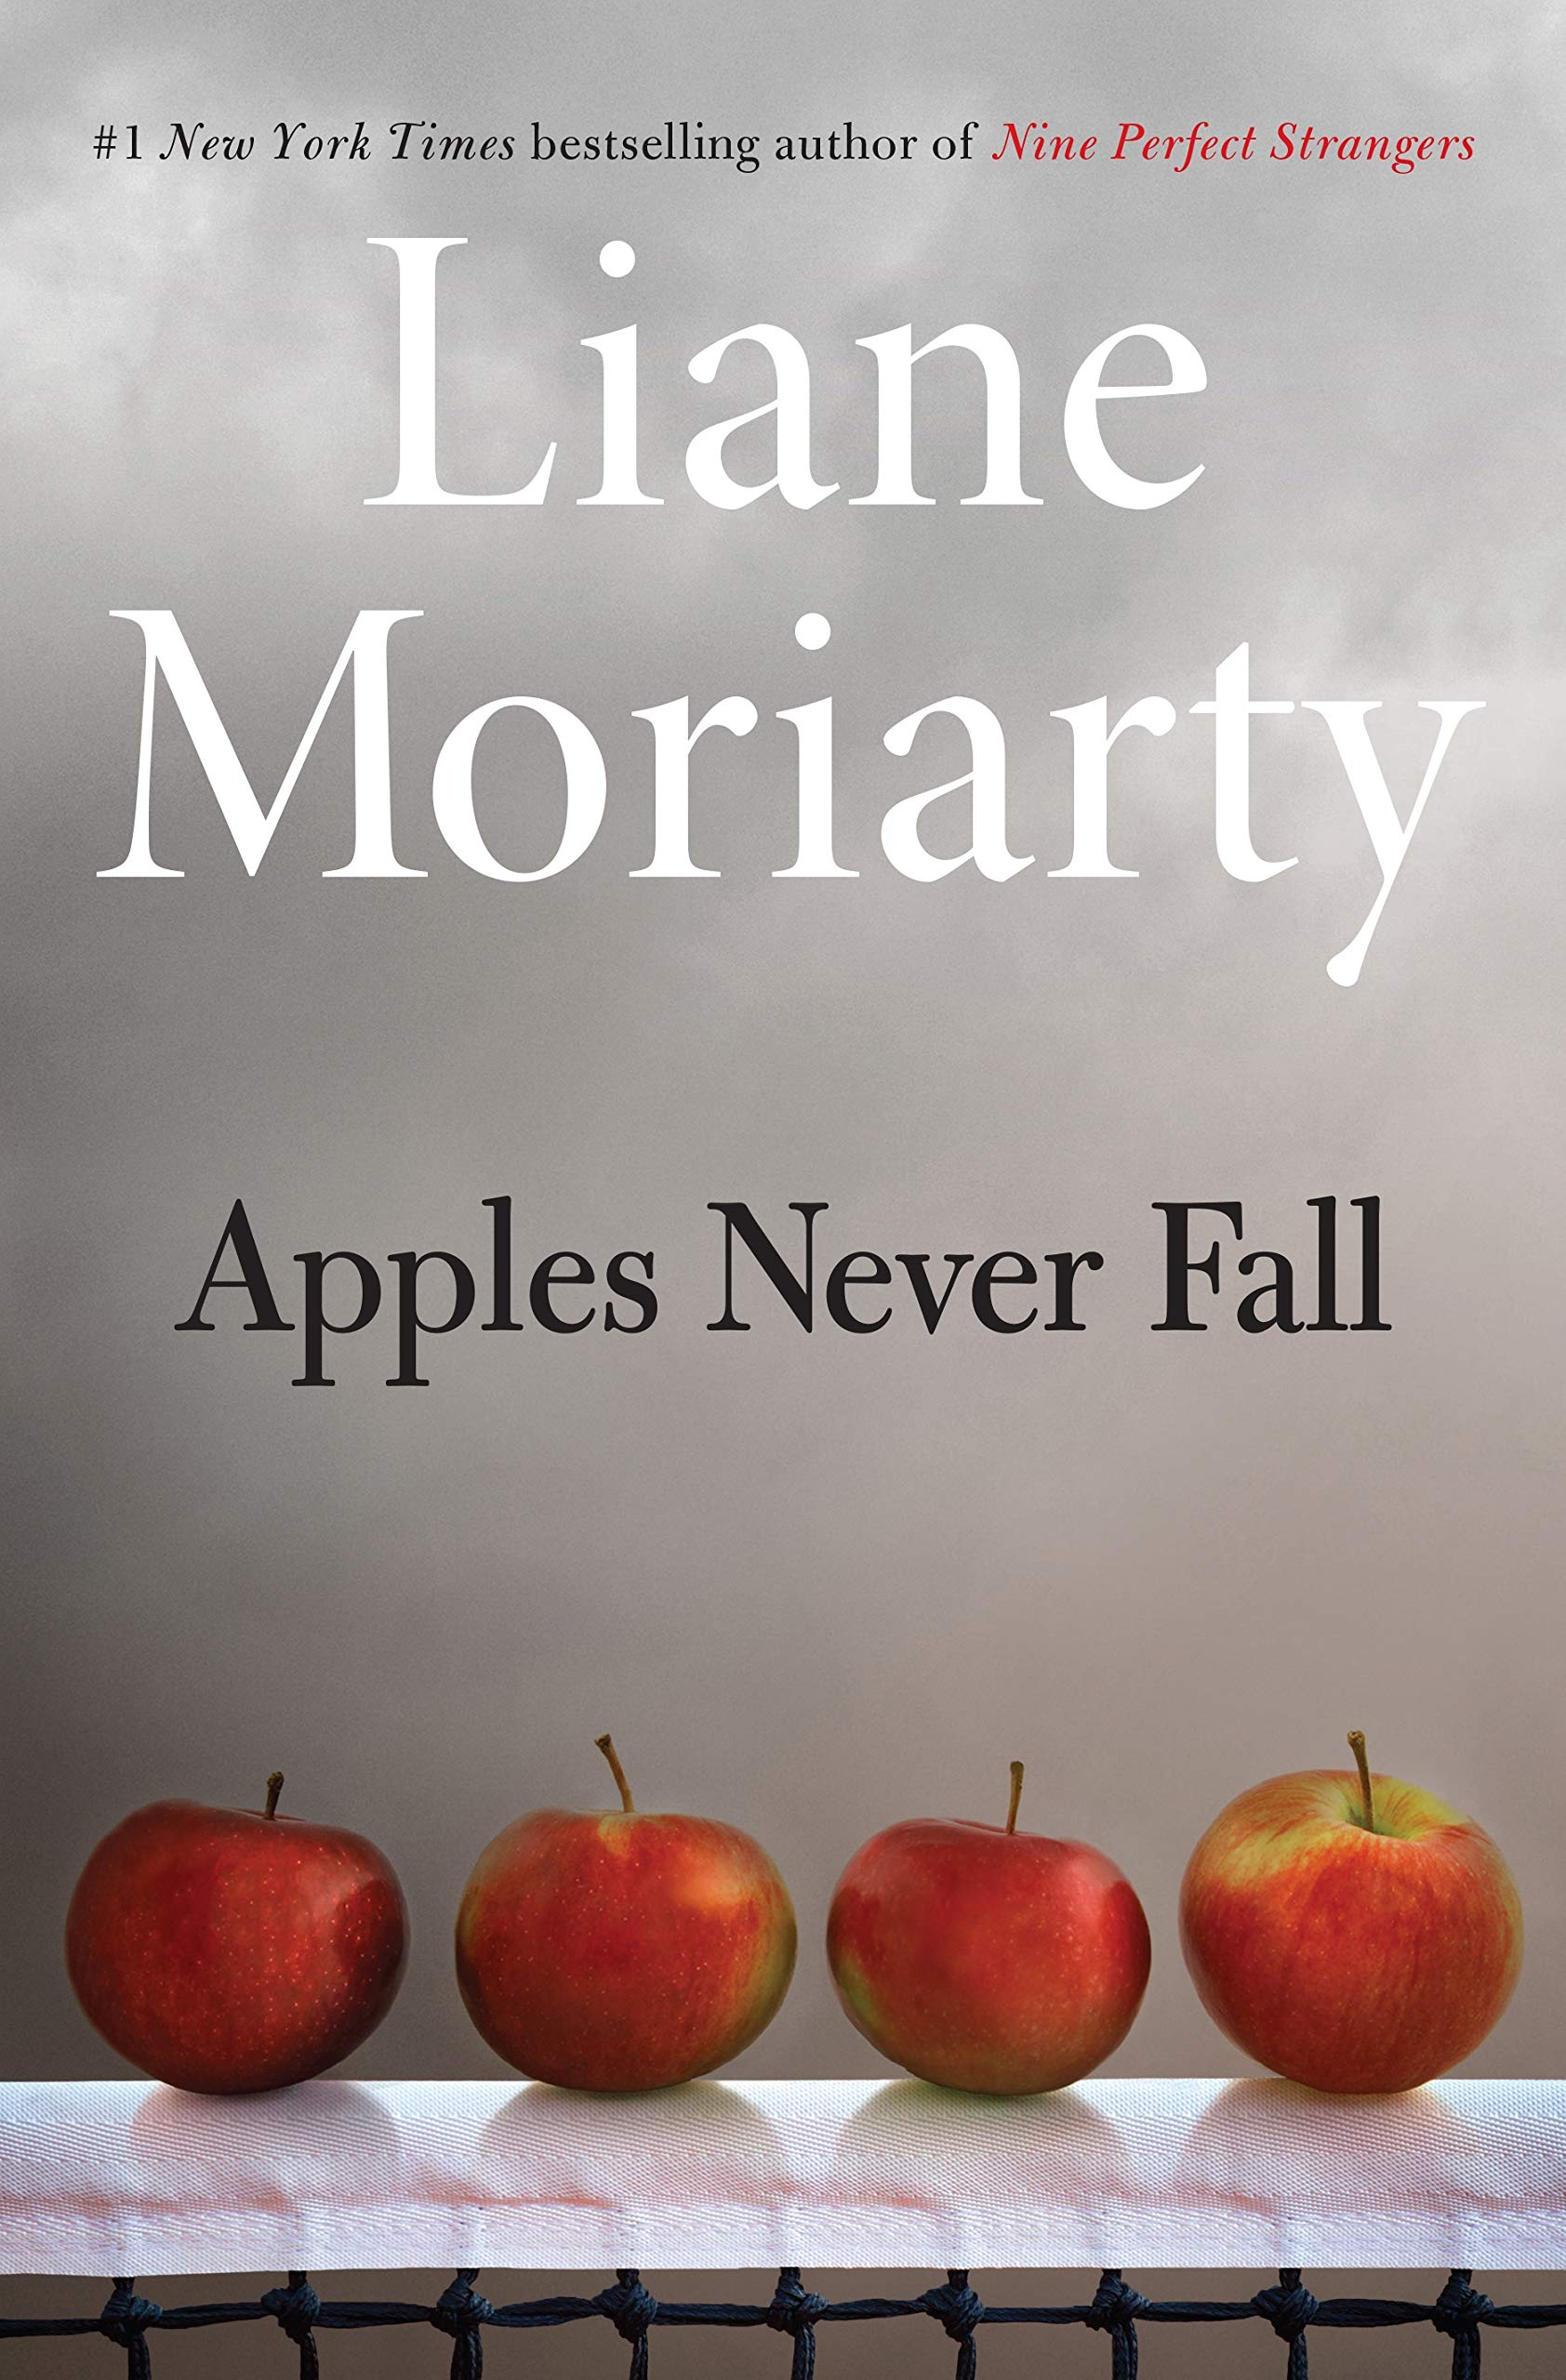 Cover image of Apples Never Fall by Liane Moriarty